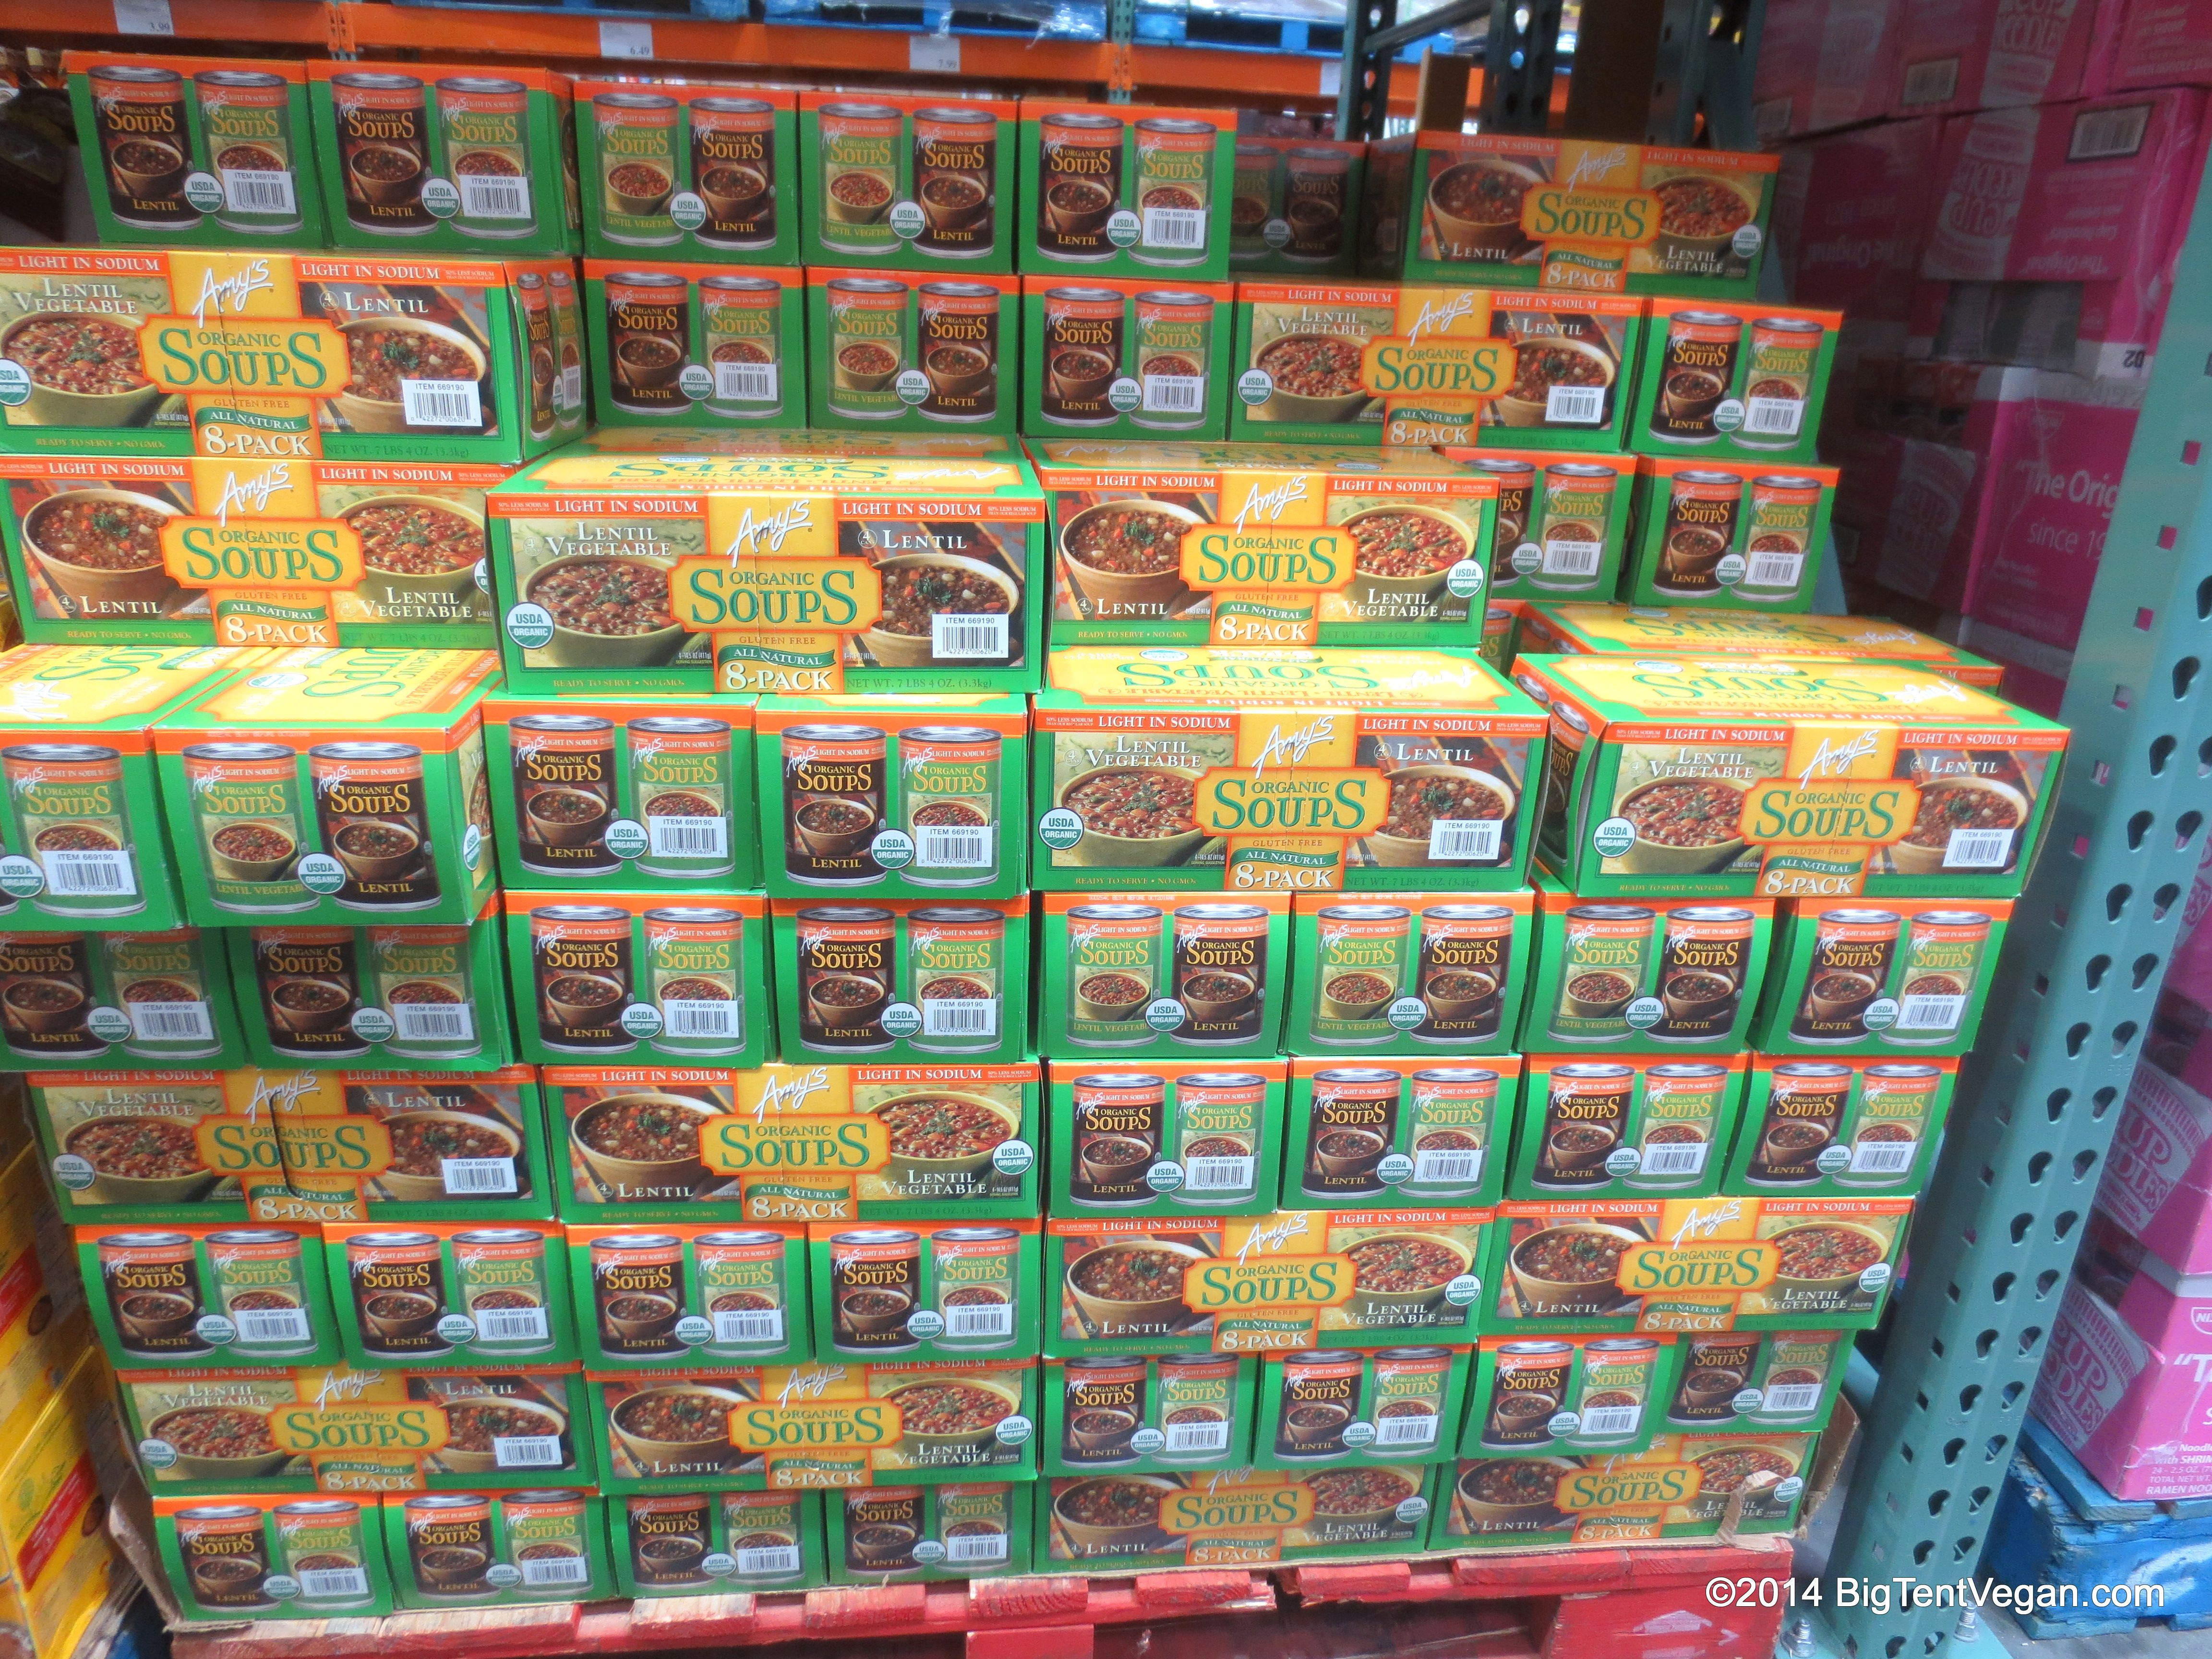 Amys Organic Soups In Lentil Vegetable And Lentil Costco